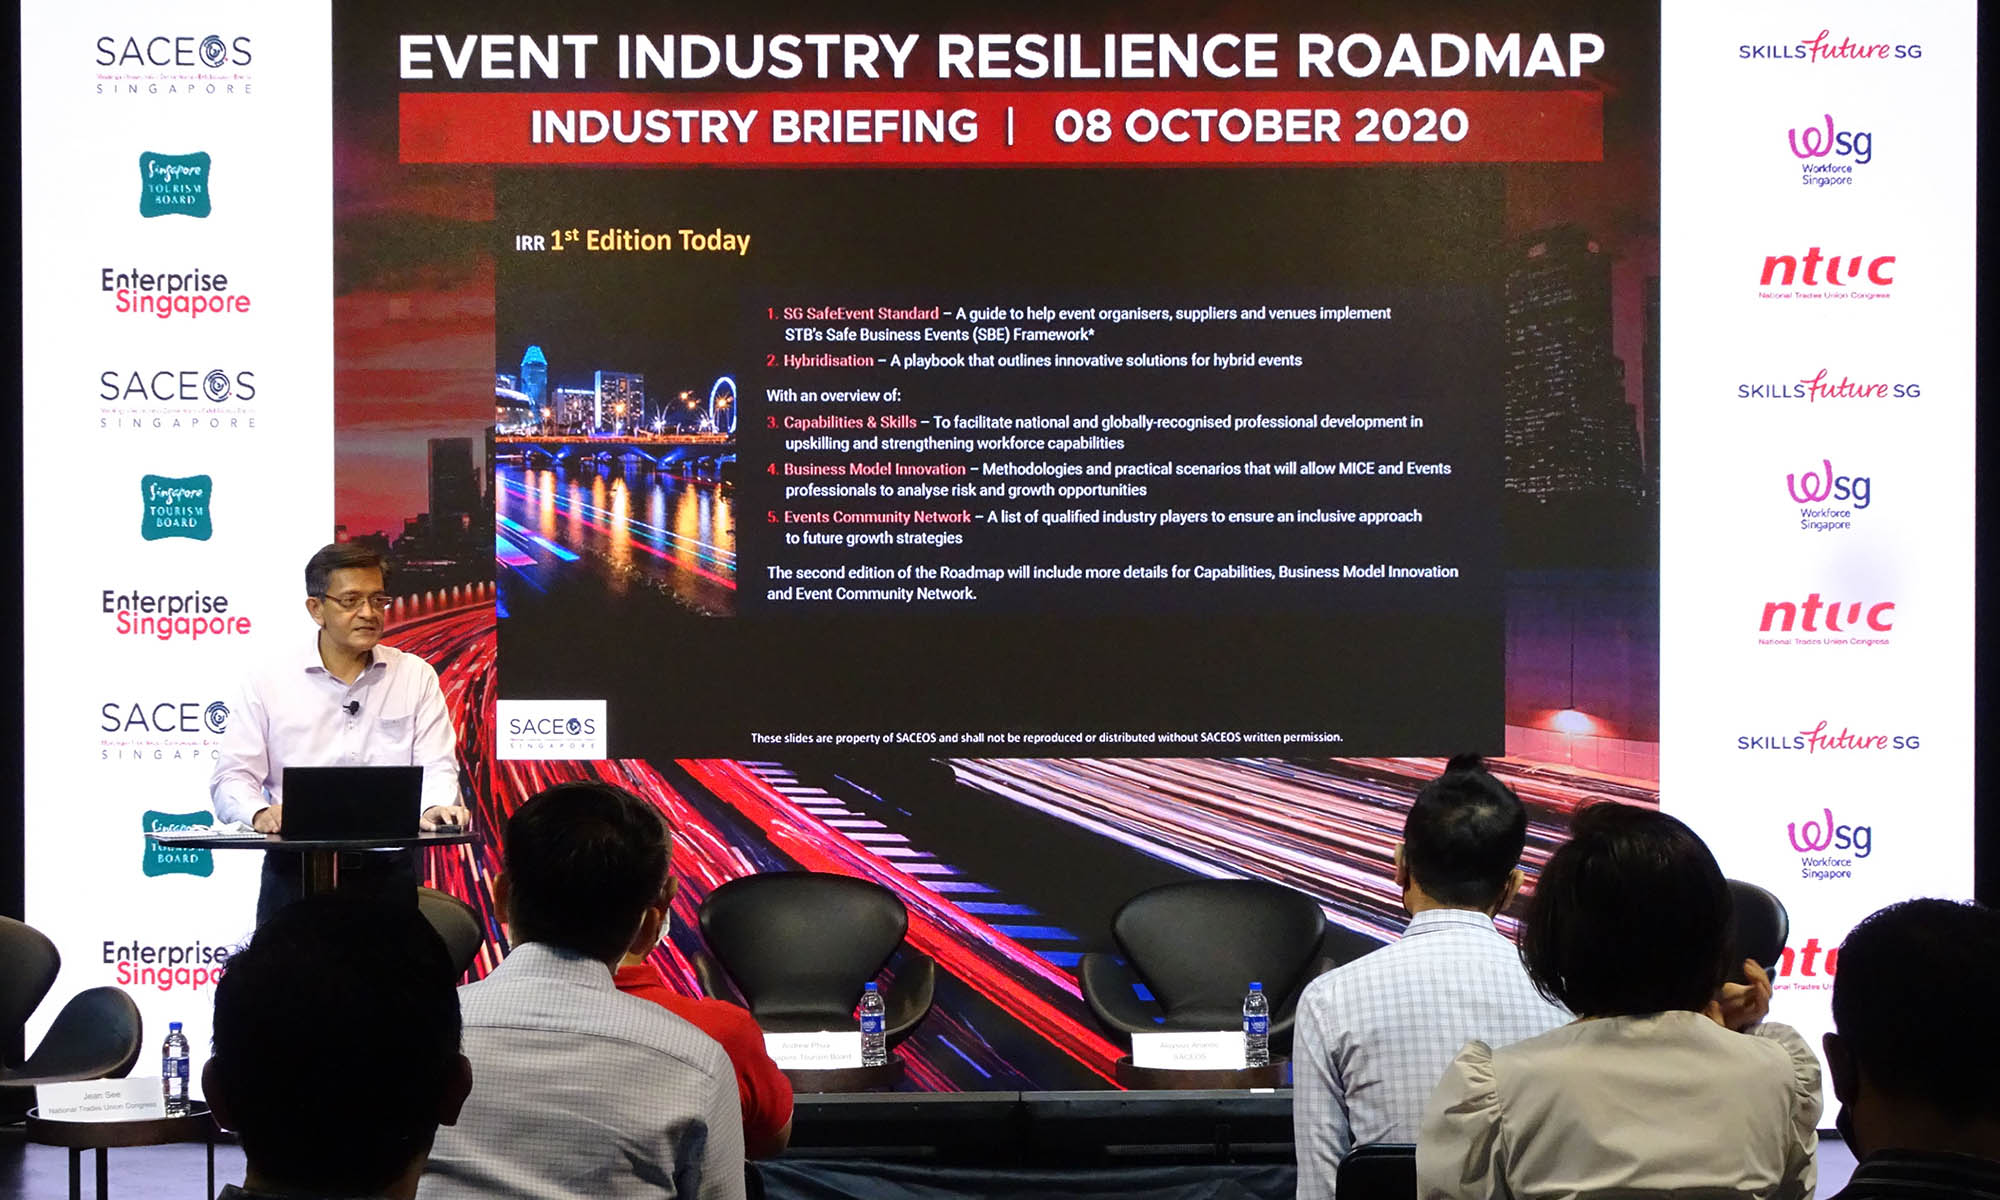 SACEOS announces new Event Industry Resilience Roadmap